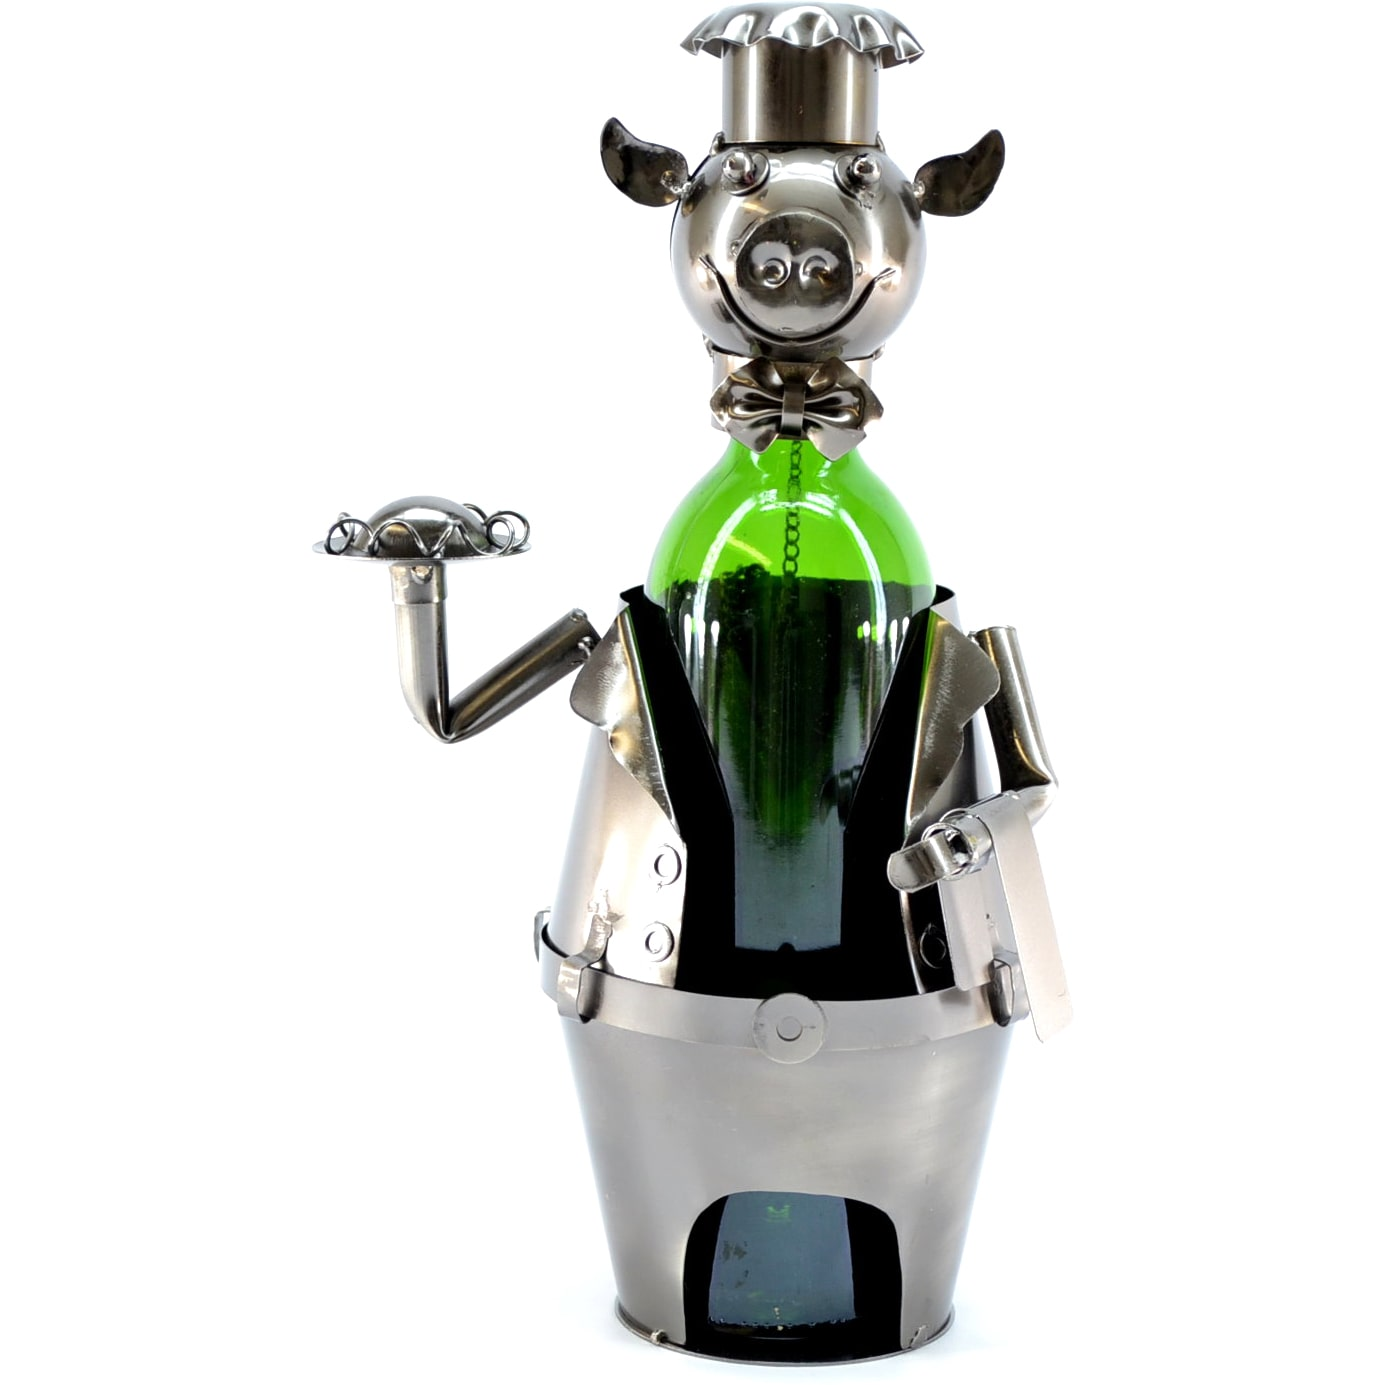 3starimex Wine Caddy Pig Waiter Wine Bottle Holder